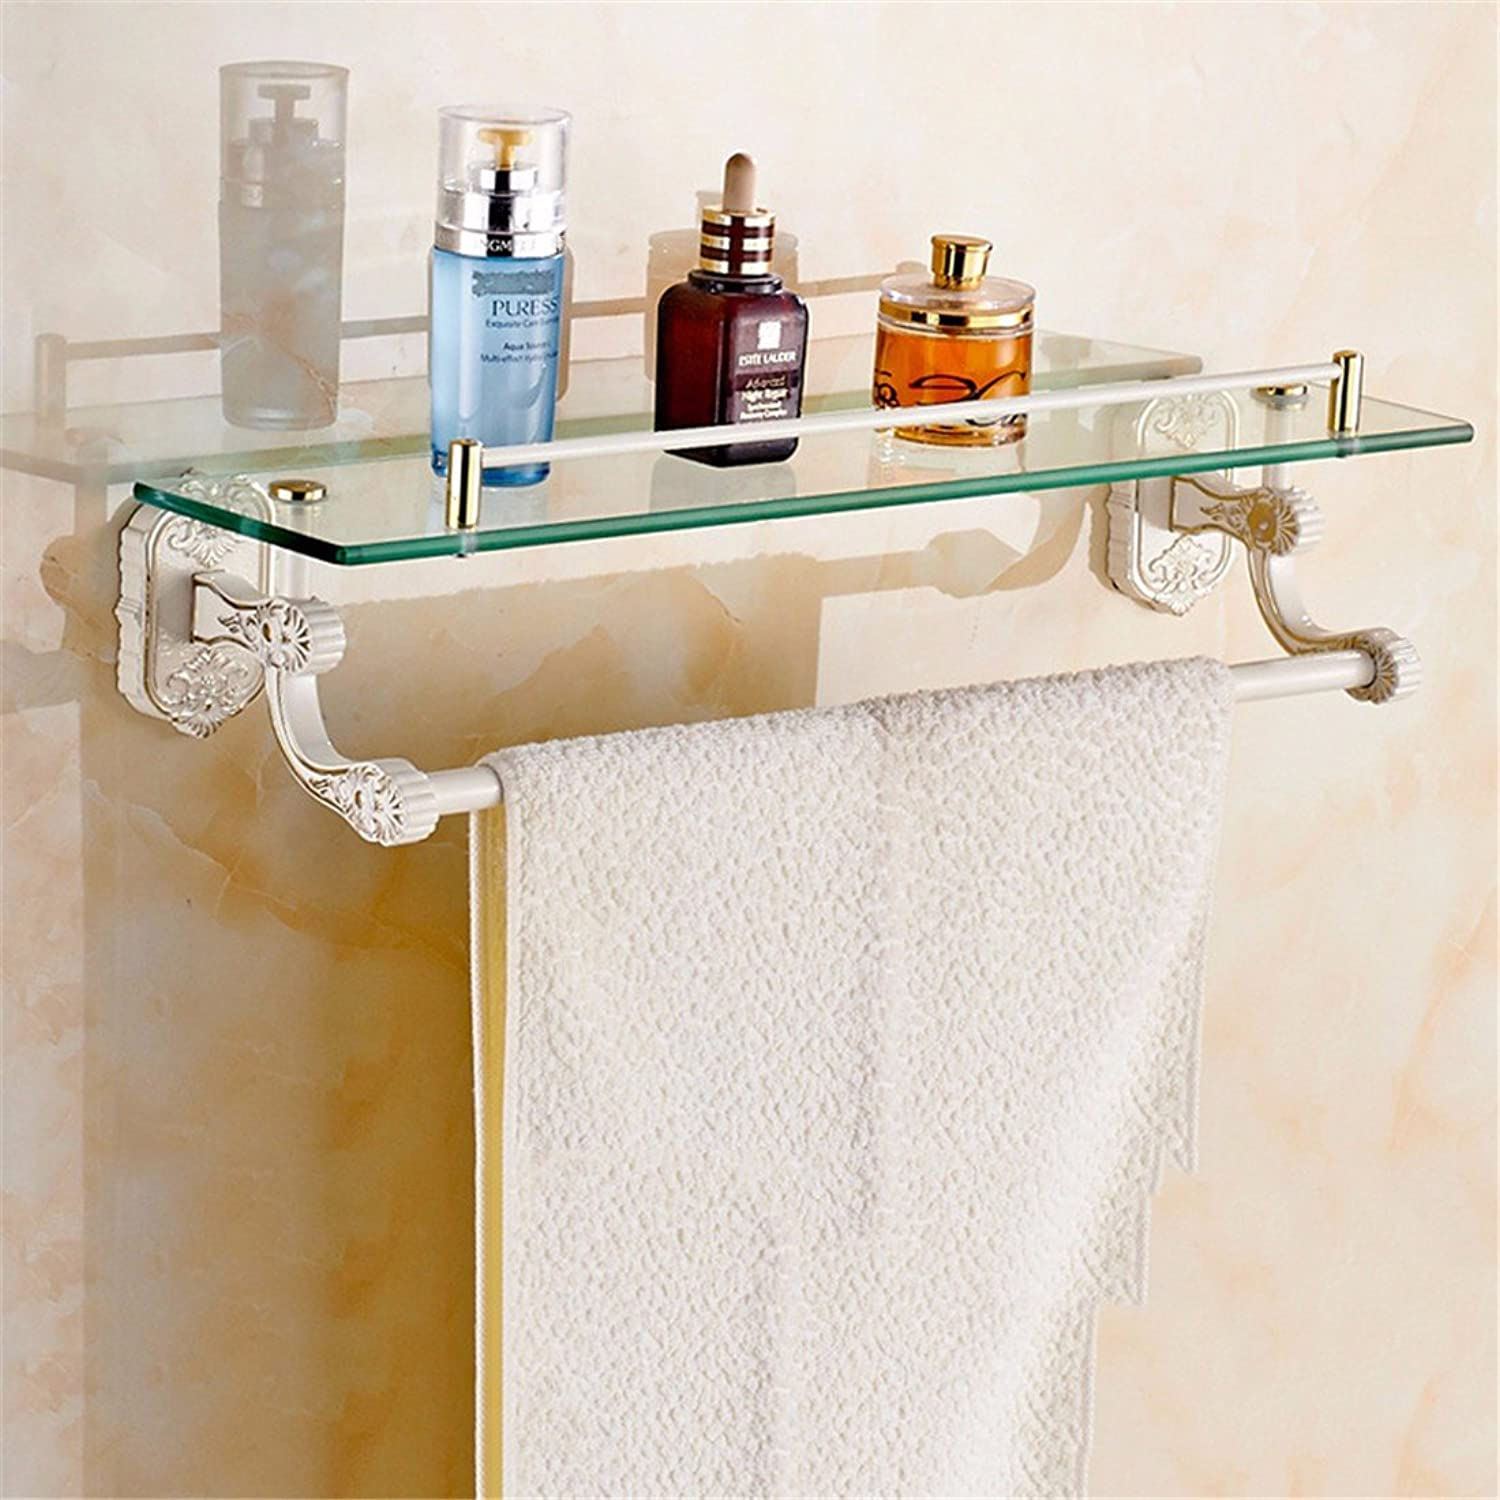 LAONA European zinc alloy white country carved base, bathroom fittings, soap box, single and double rod,Shelf 1 B